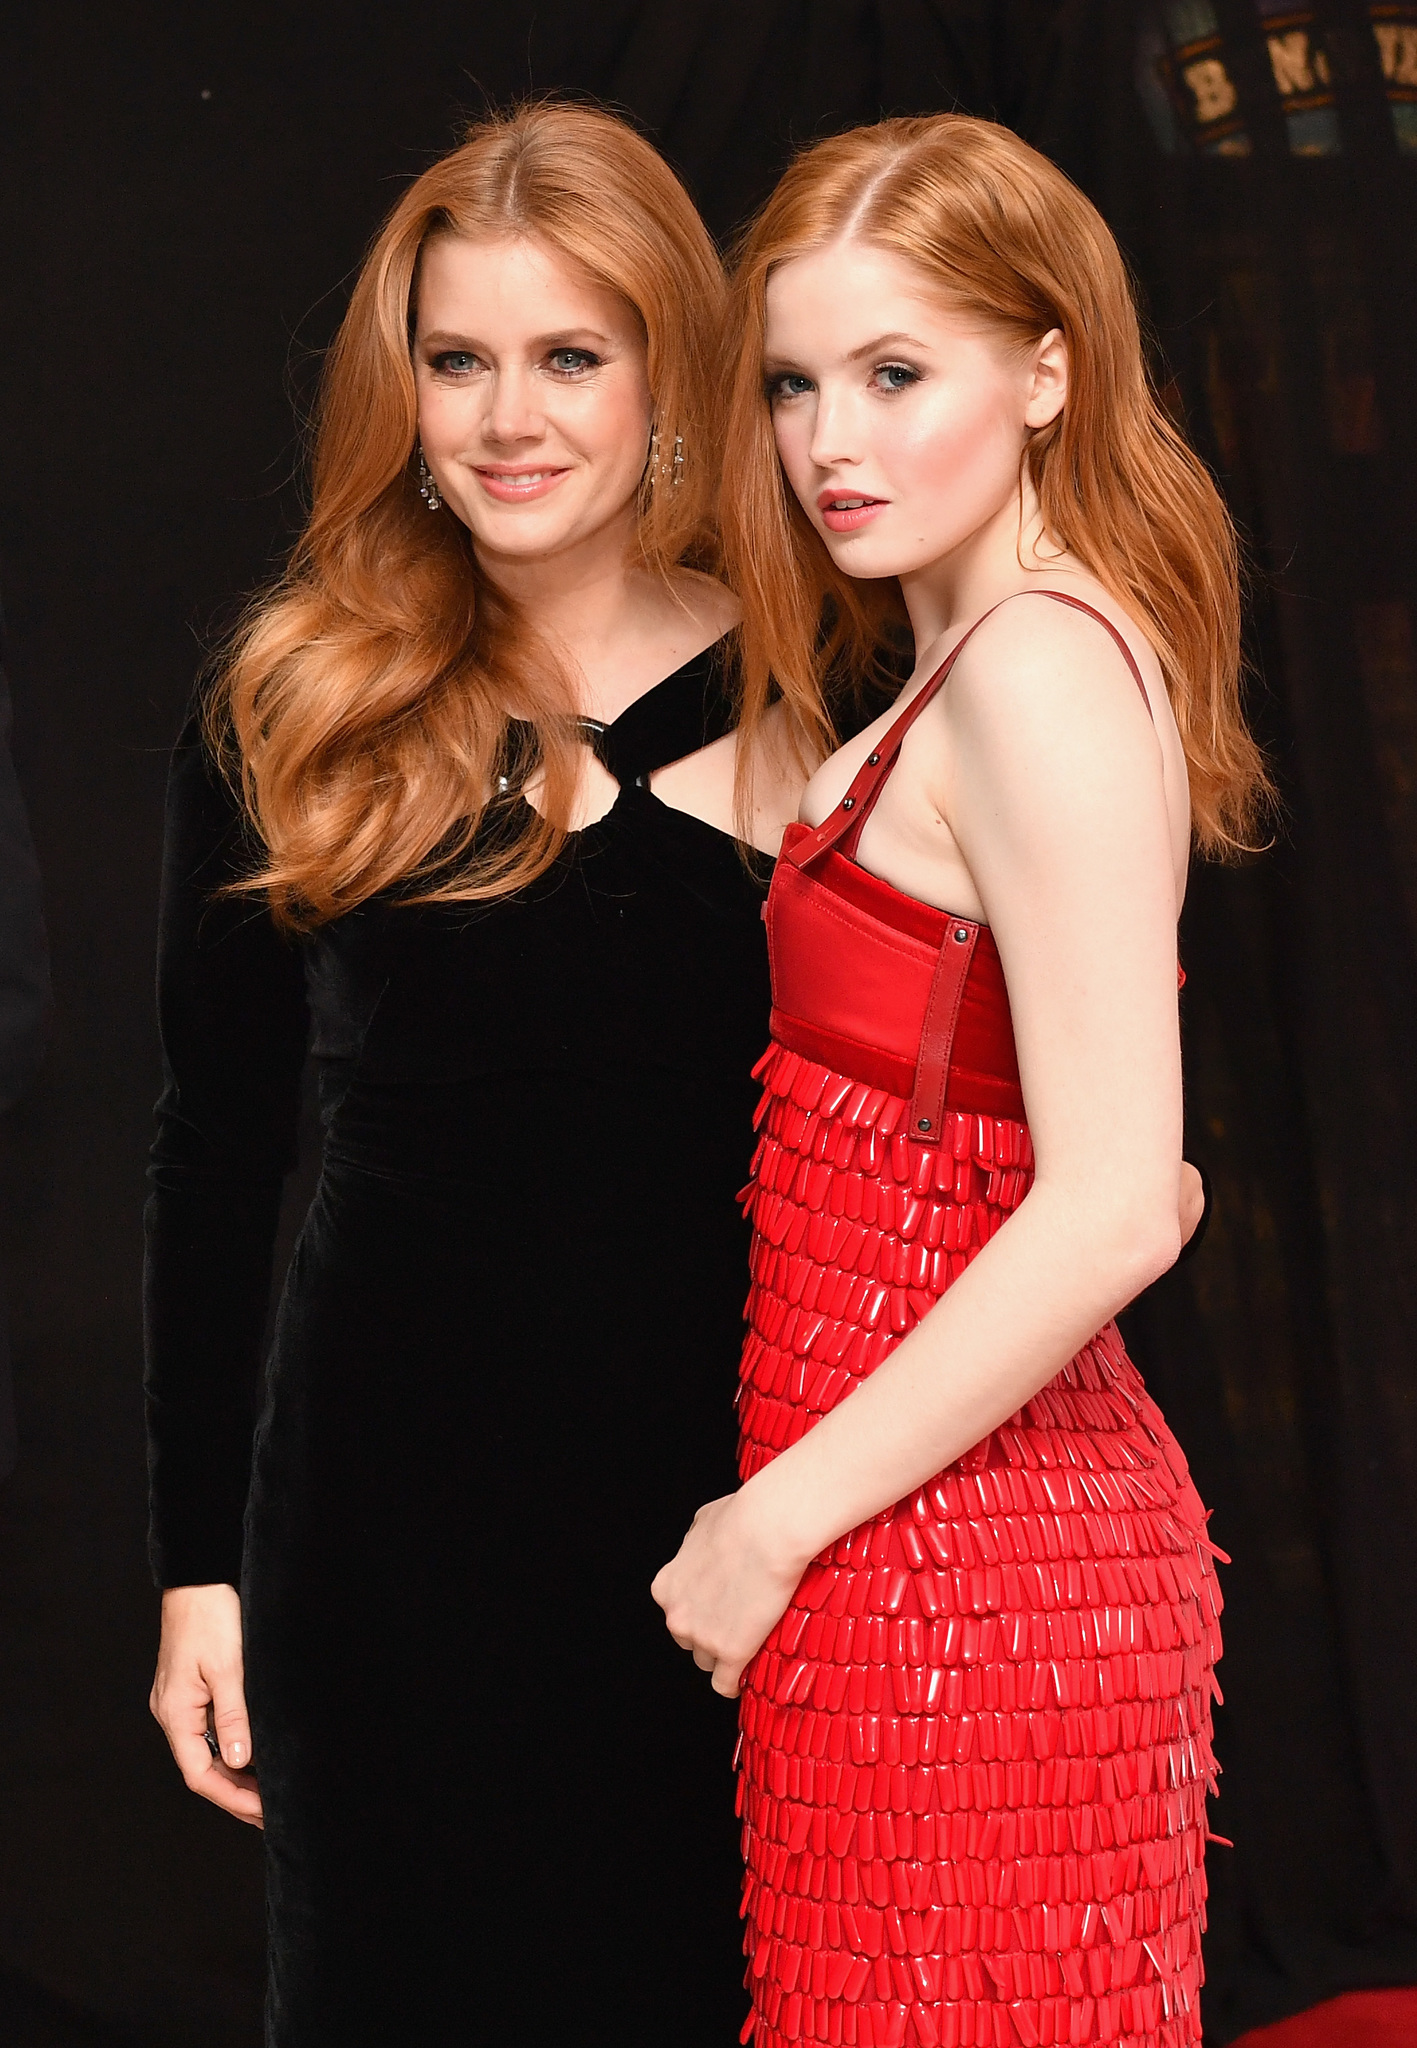 Amy Adams and Ellie Bamber at an event for Nocturnal Animals (2016)